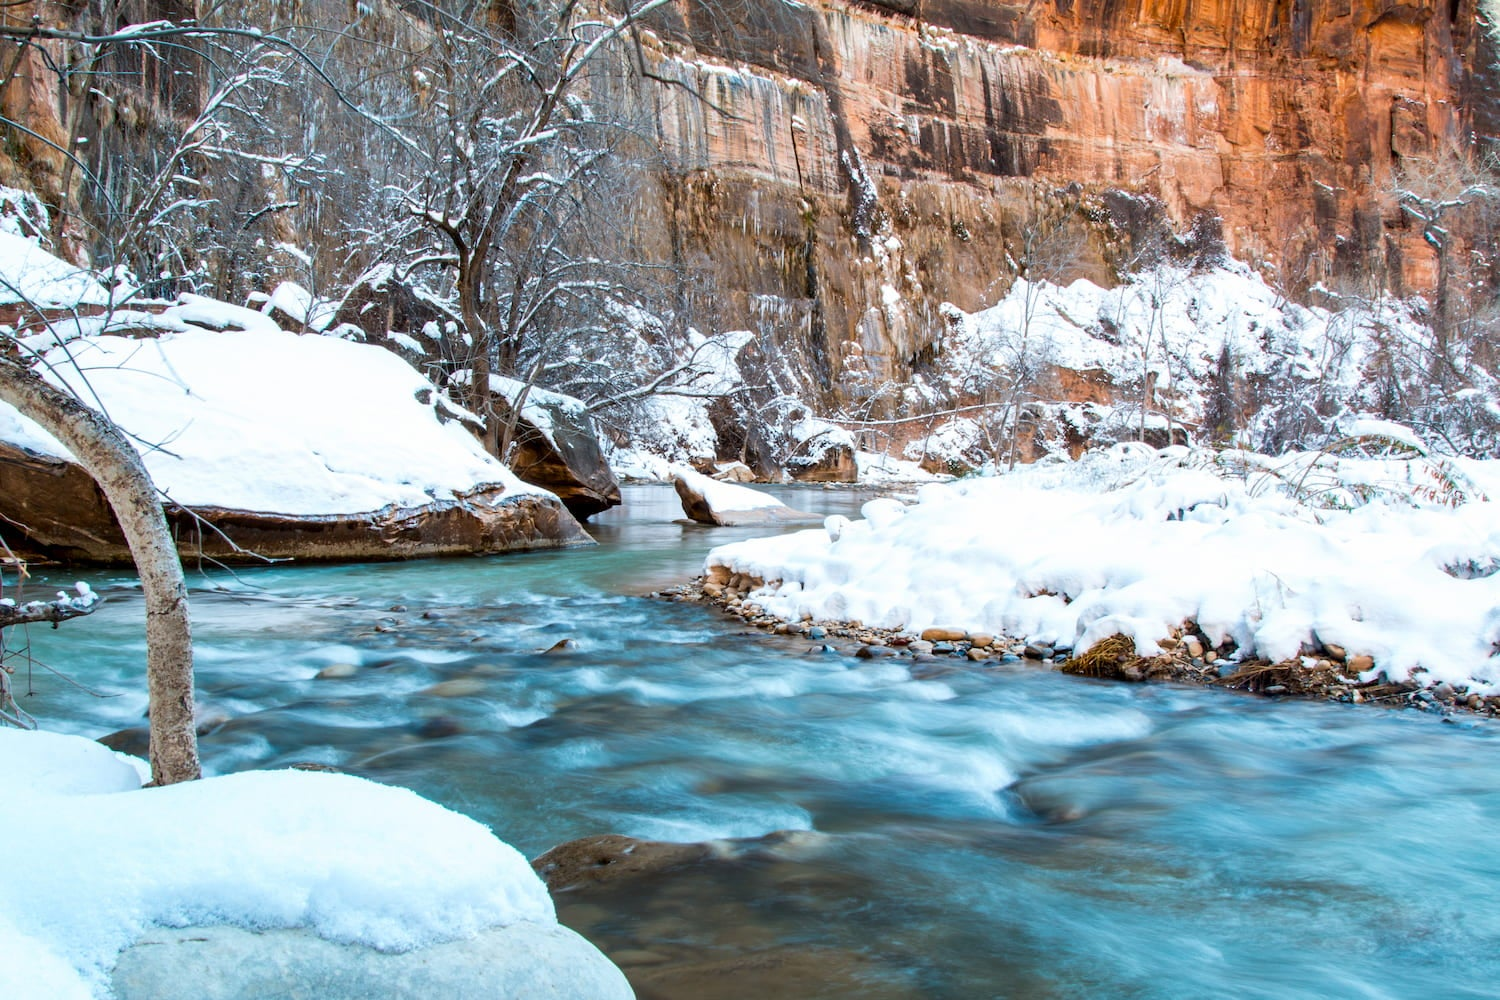 snow around a flowing river in Zion National Park